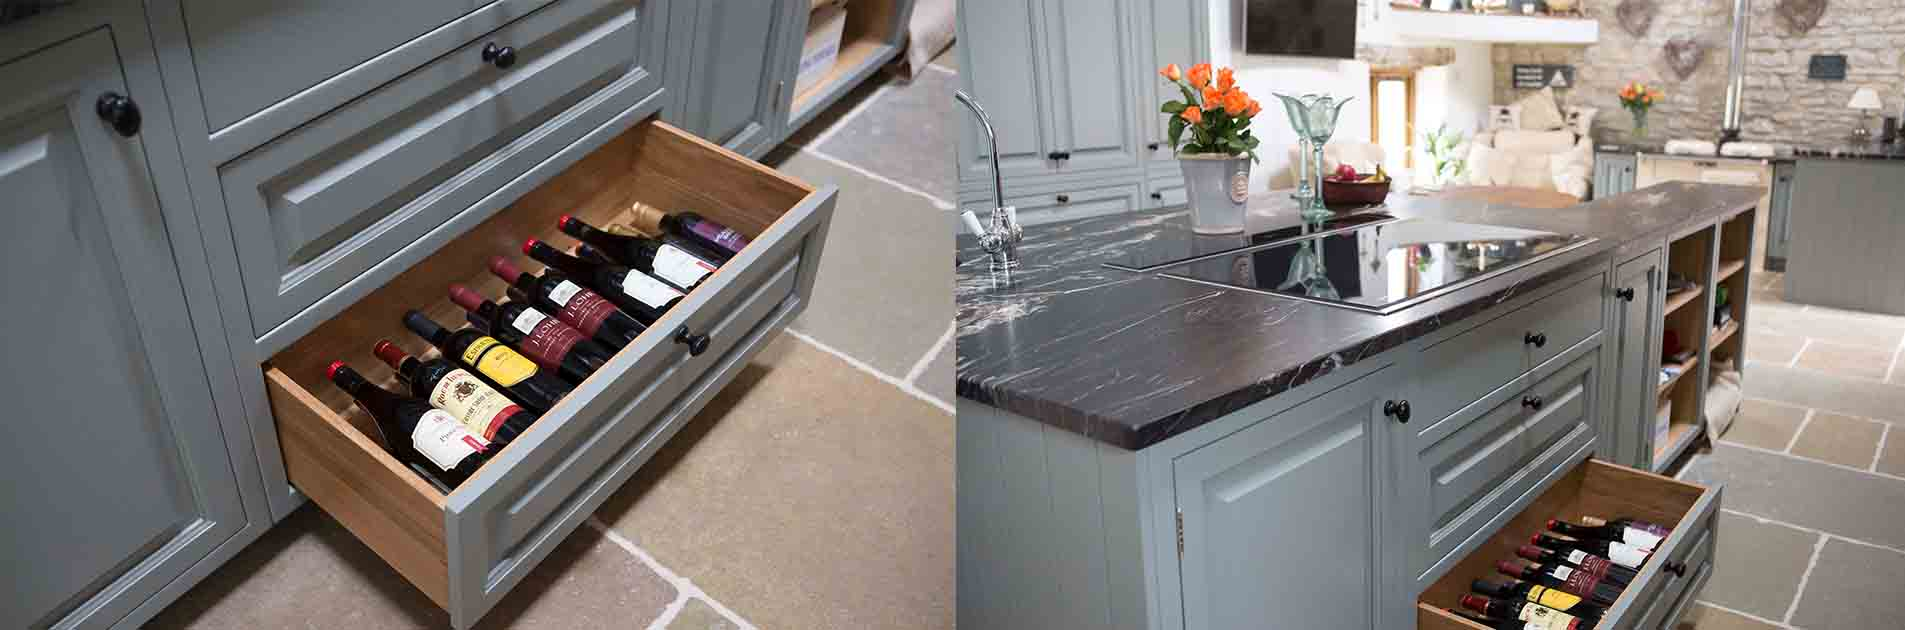 Kitchen Case Study: Prentice Windsor kitchen drawer cabinetry essential for red wine